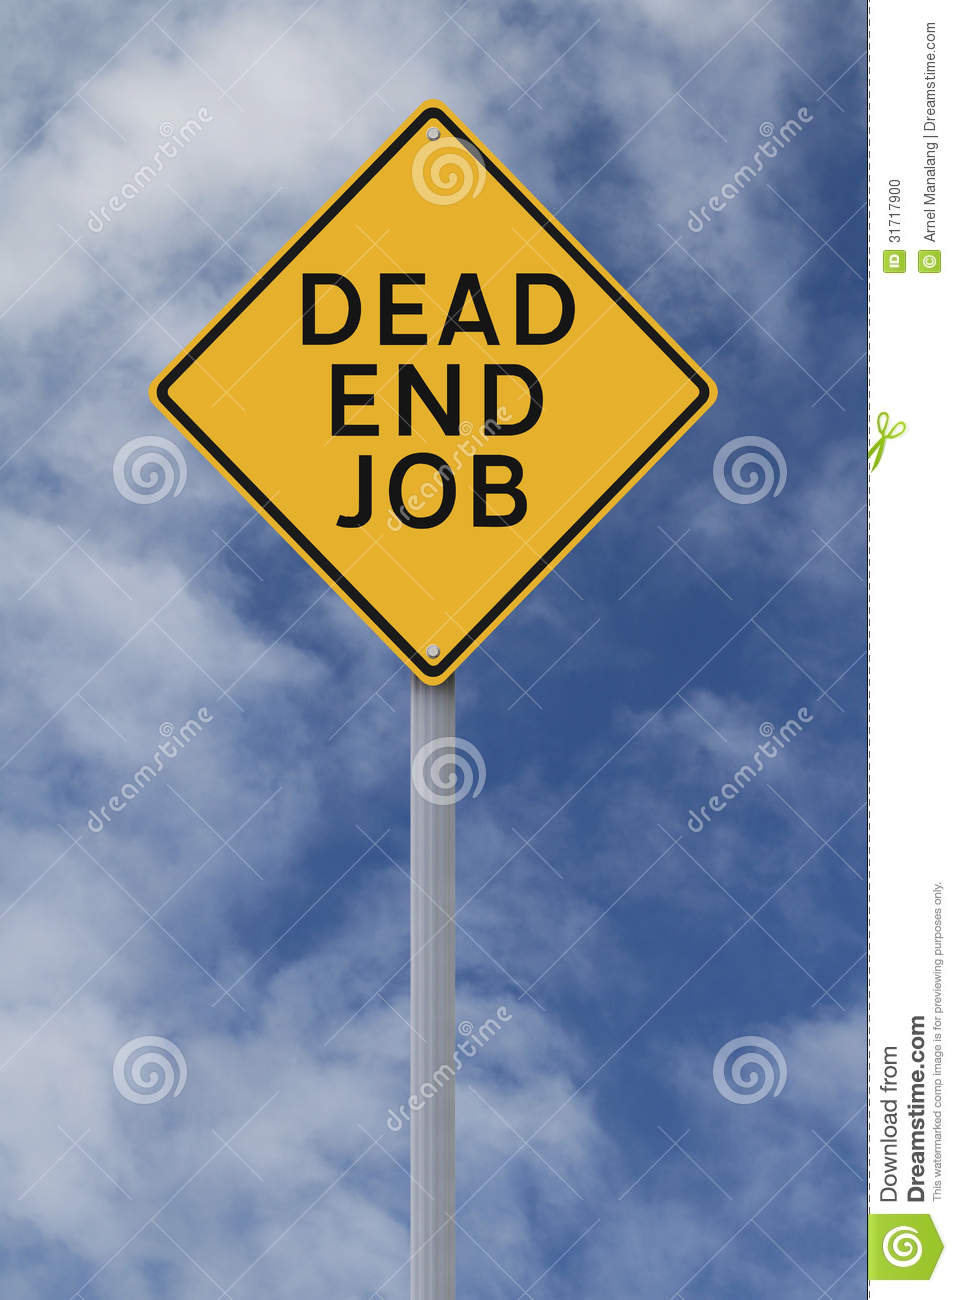 dead end job If you answered yes to any of these questions, there's a good chance you may be  in the wrong job below are 15 signs that you're stuck in a dead-end job.